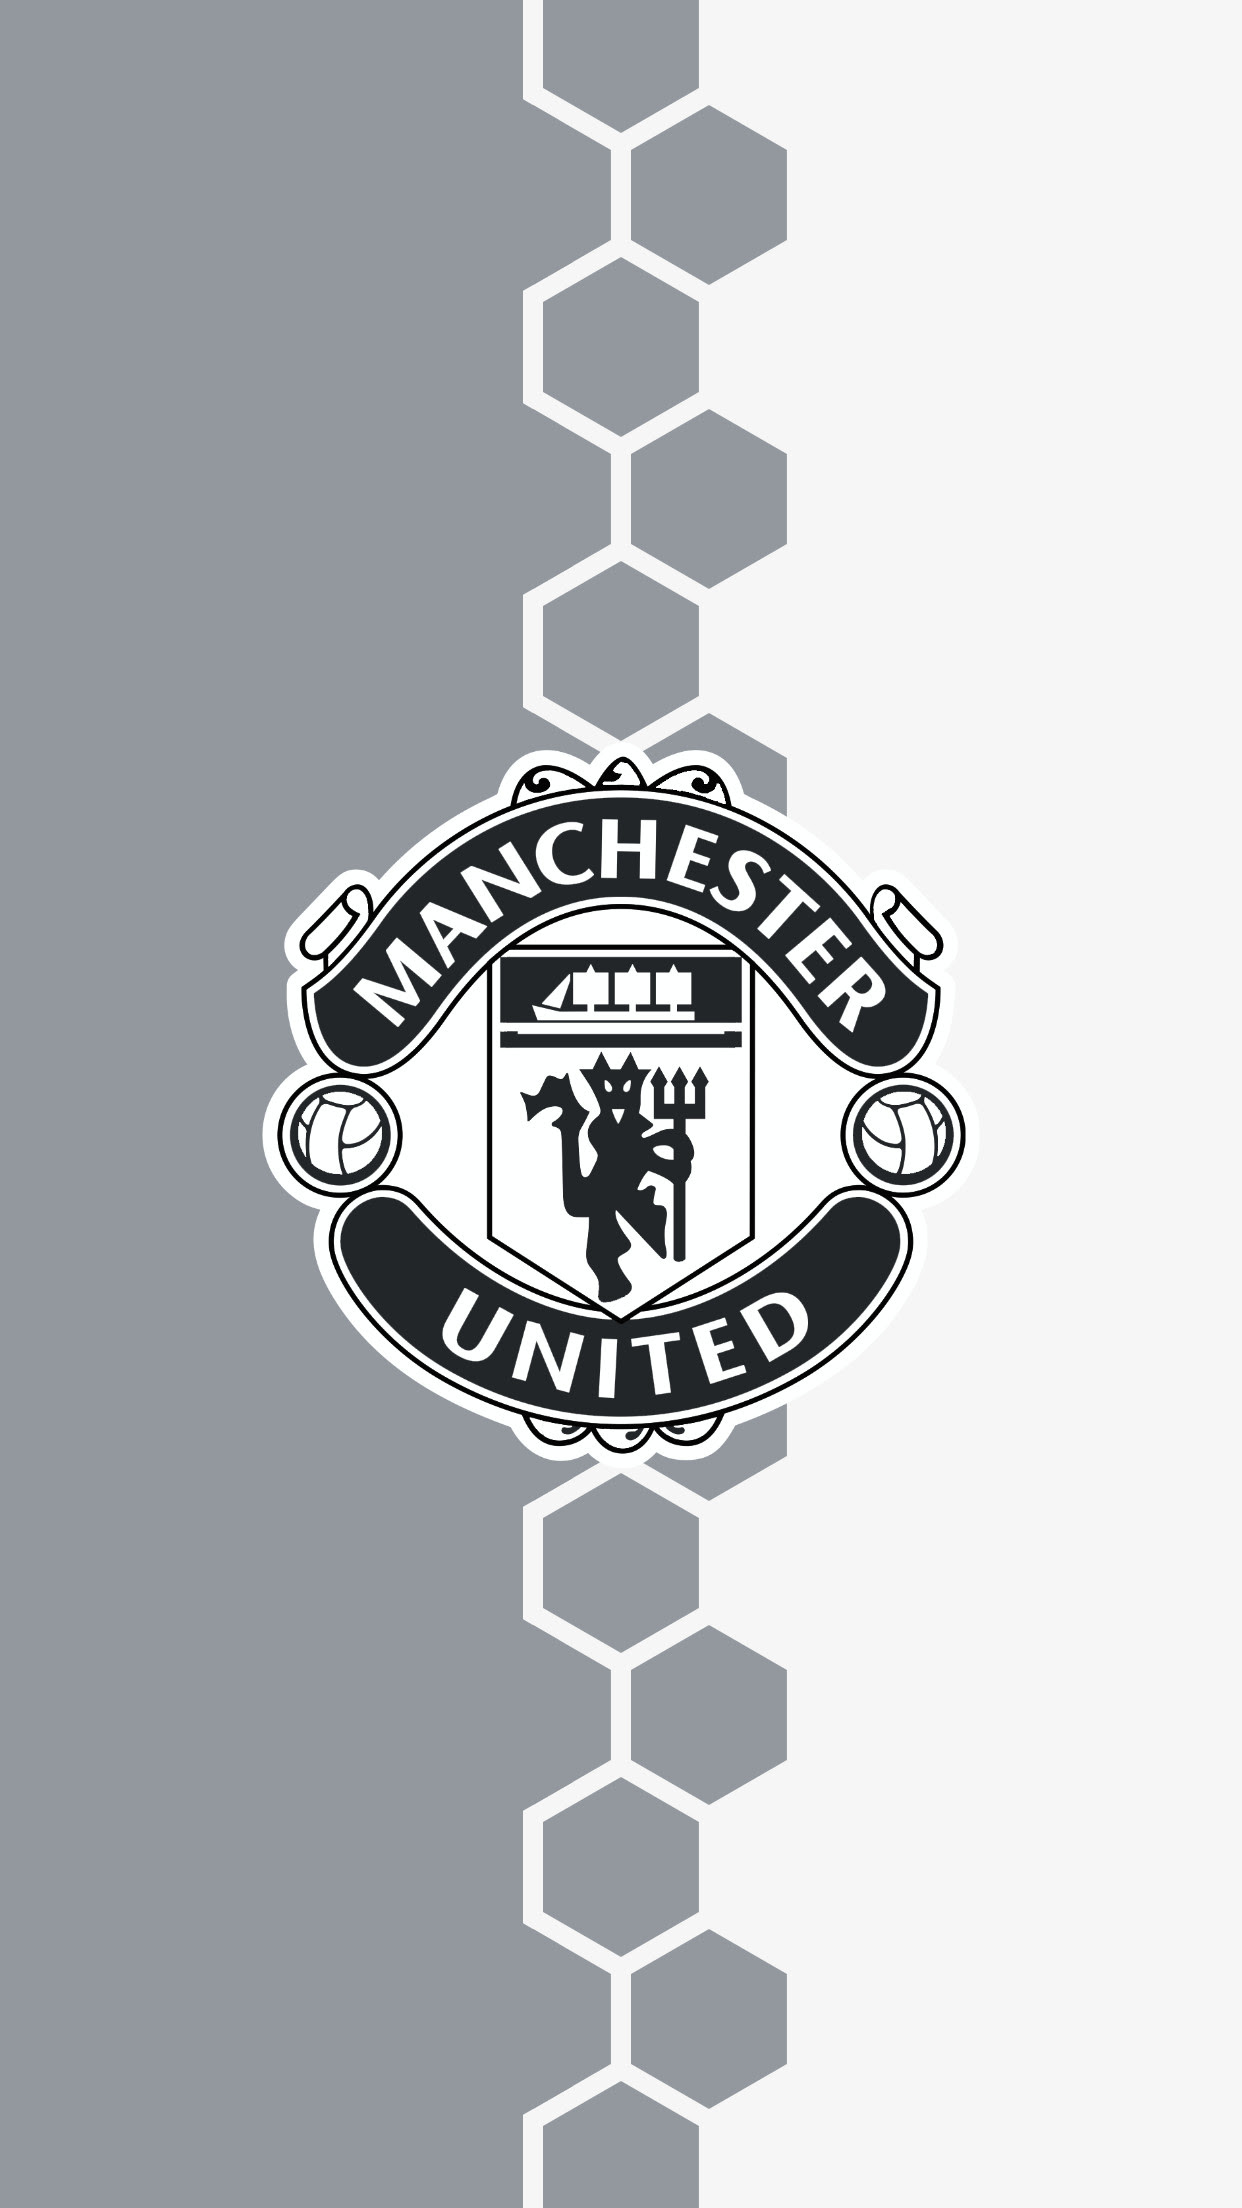 Manchester United Wallpaper Hd 2018 67 Images